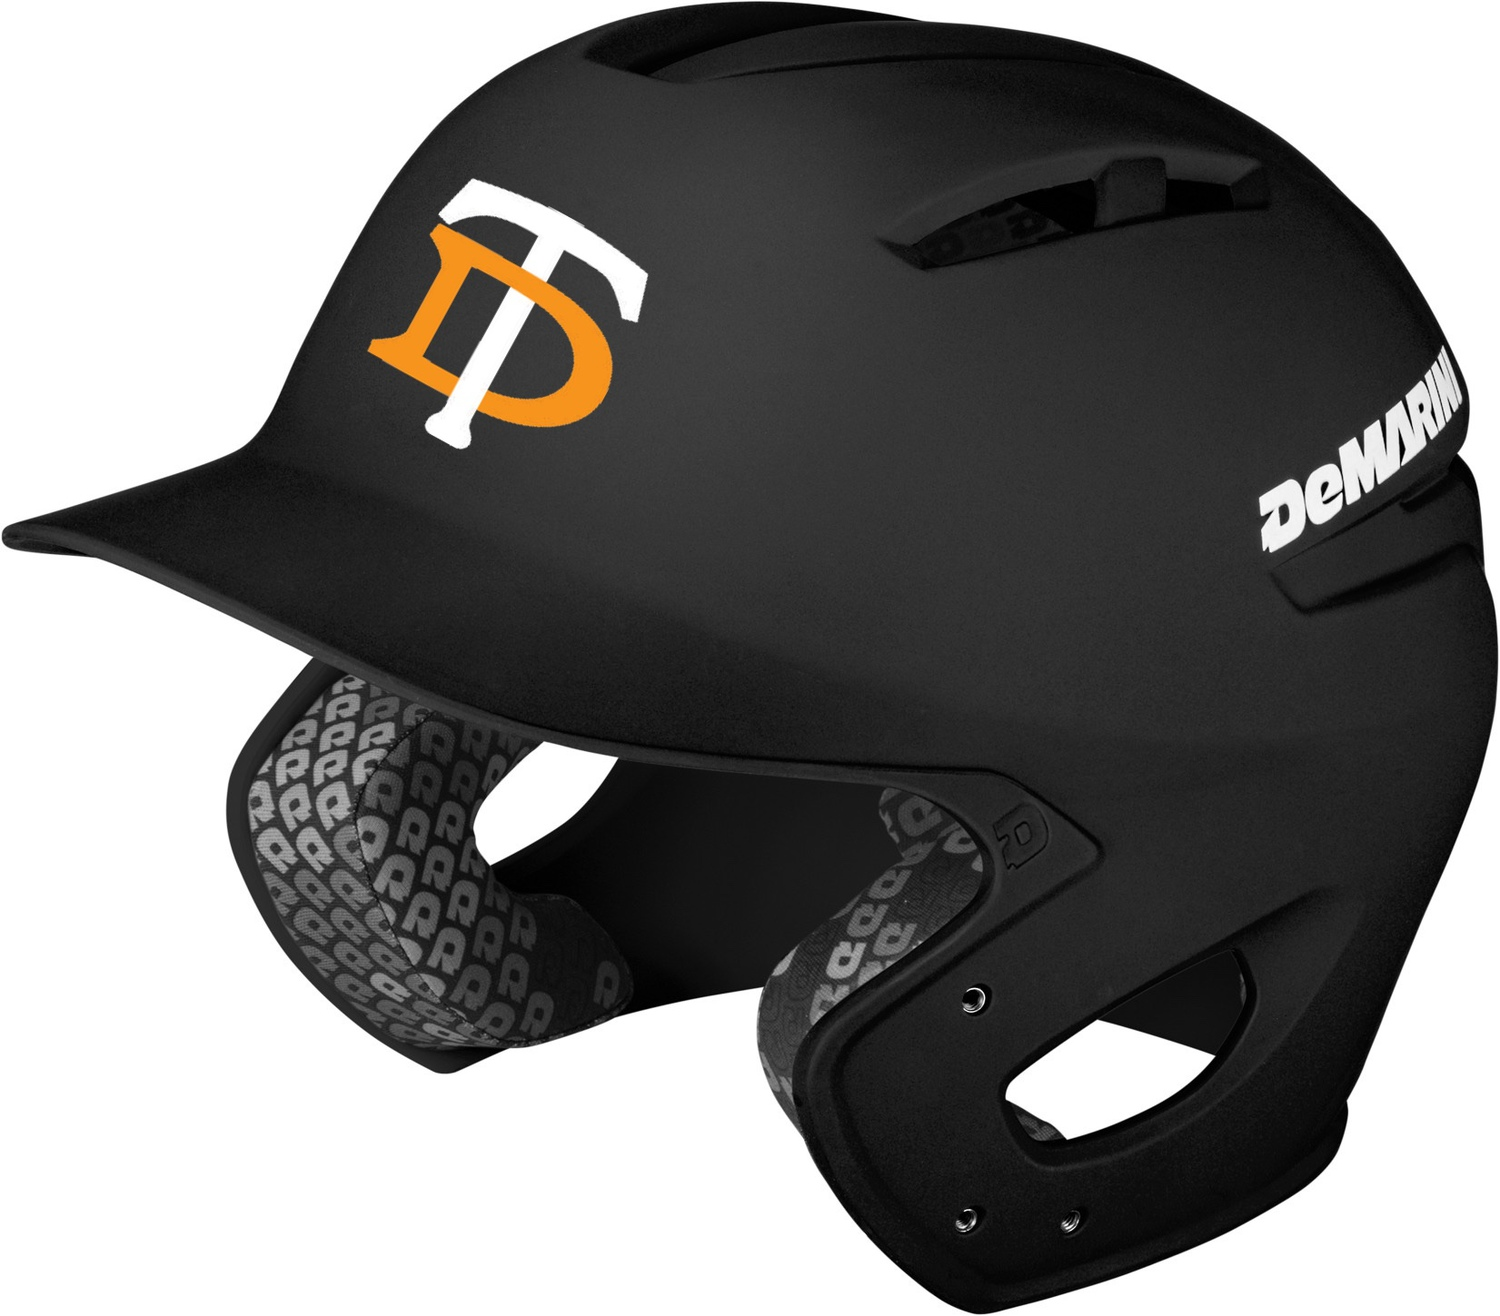 DeMarini Black Paradox Batting Helmet